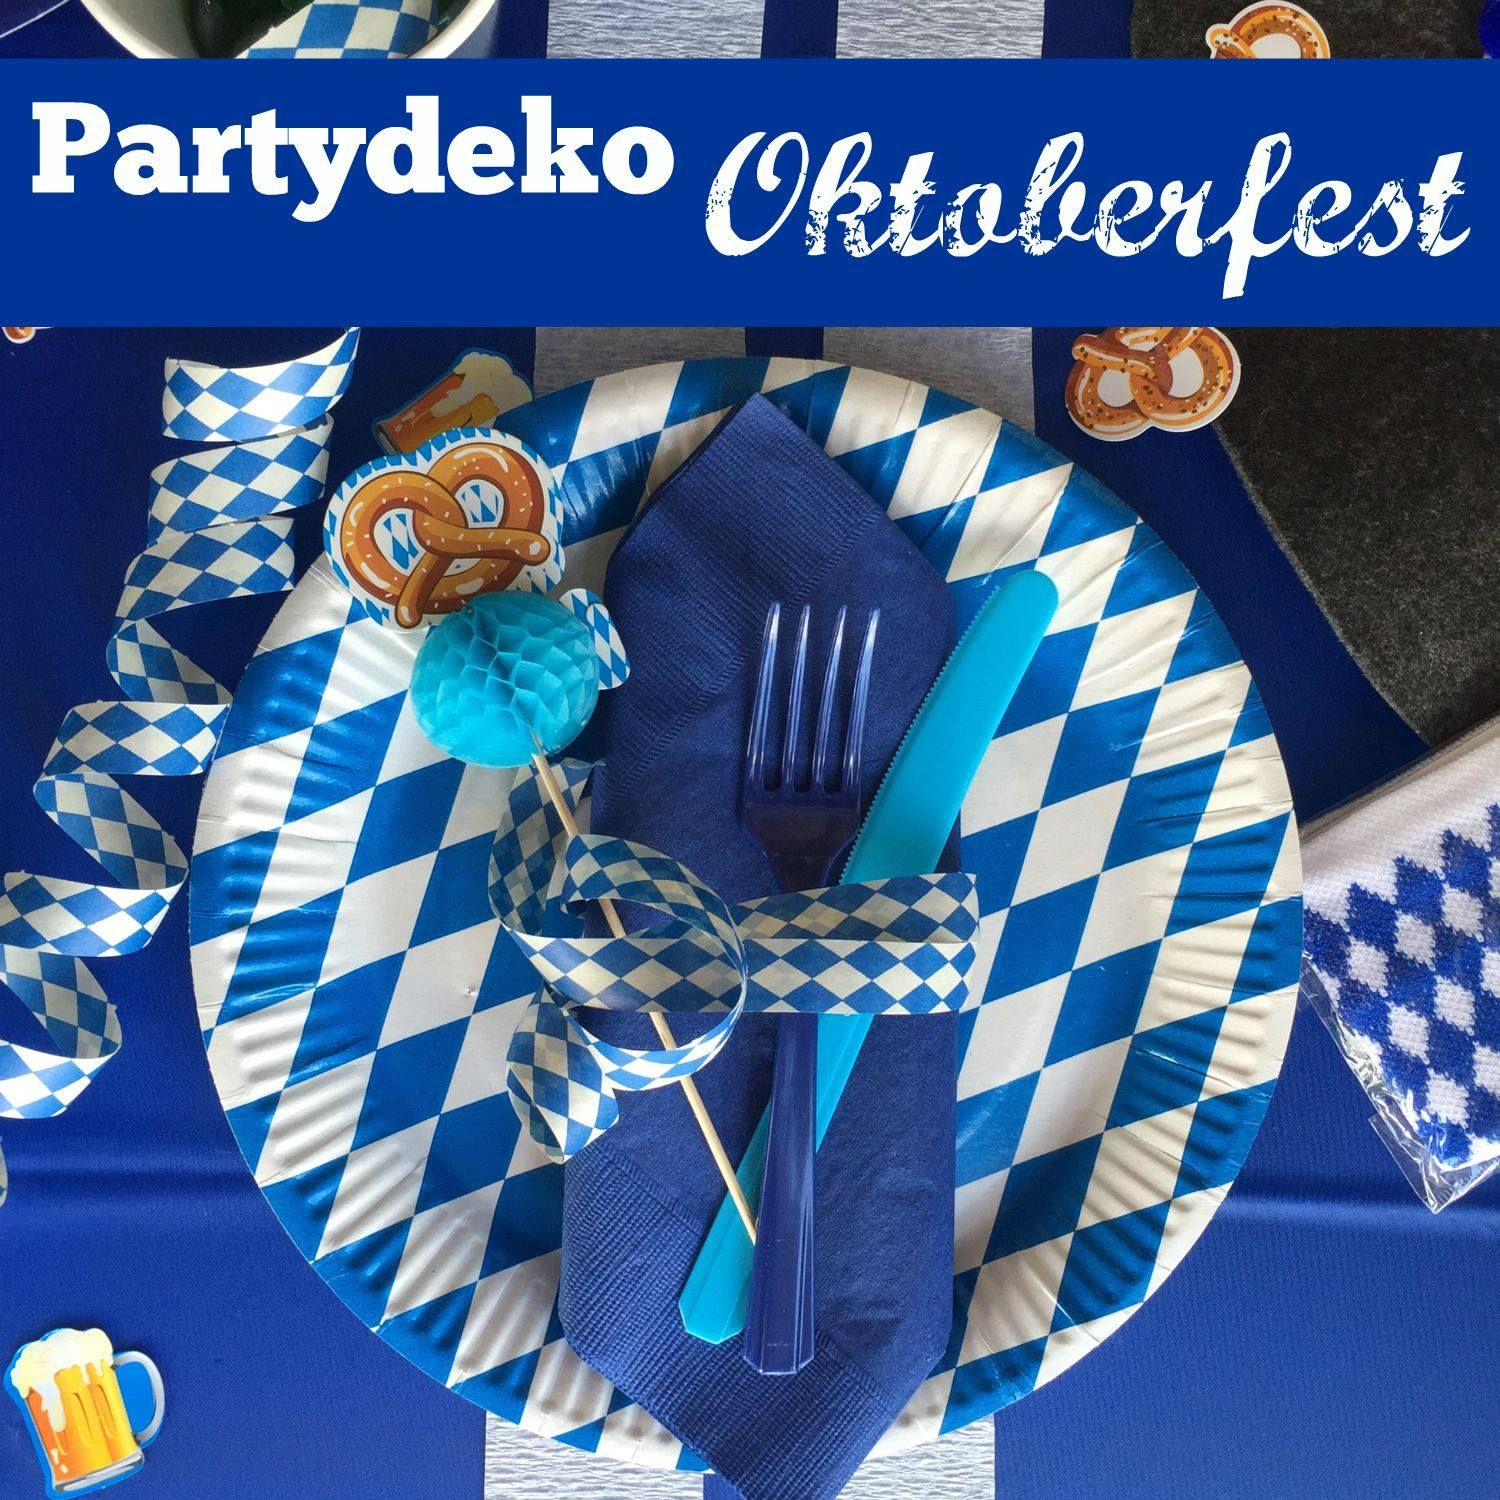 oktoberfest deko in weiss blau oktoberfest party ideen pinterest. Black Bedroom Furniture Sets. Home Design Ideas